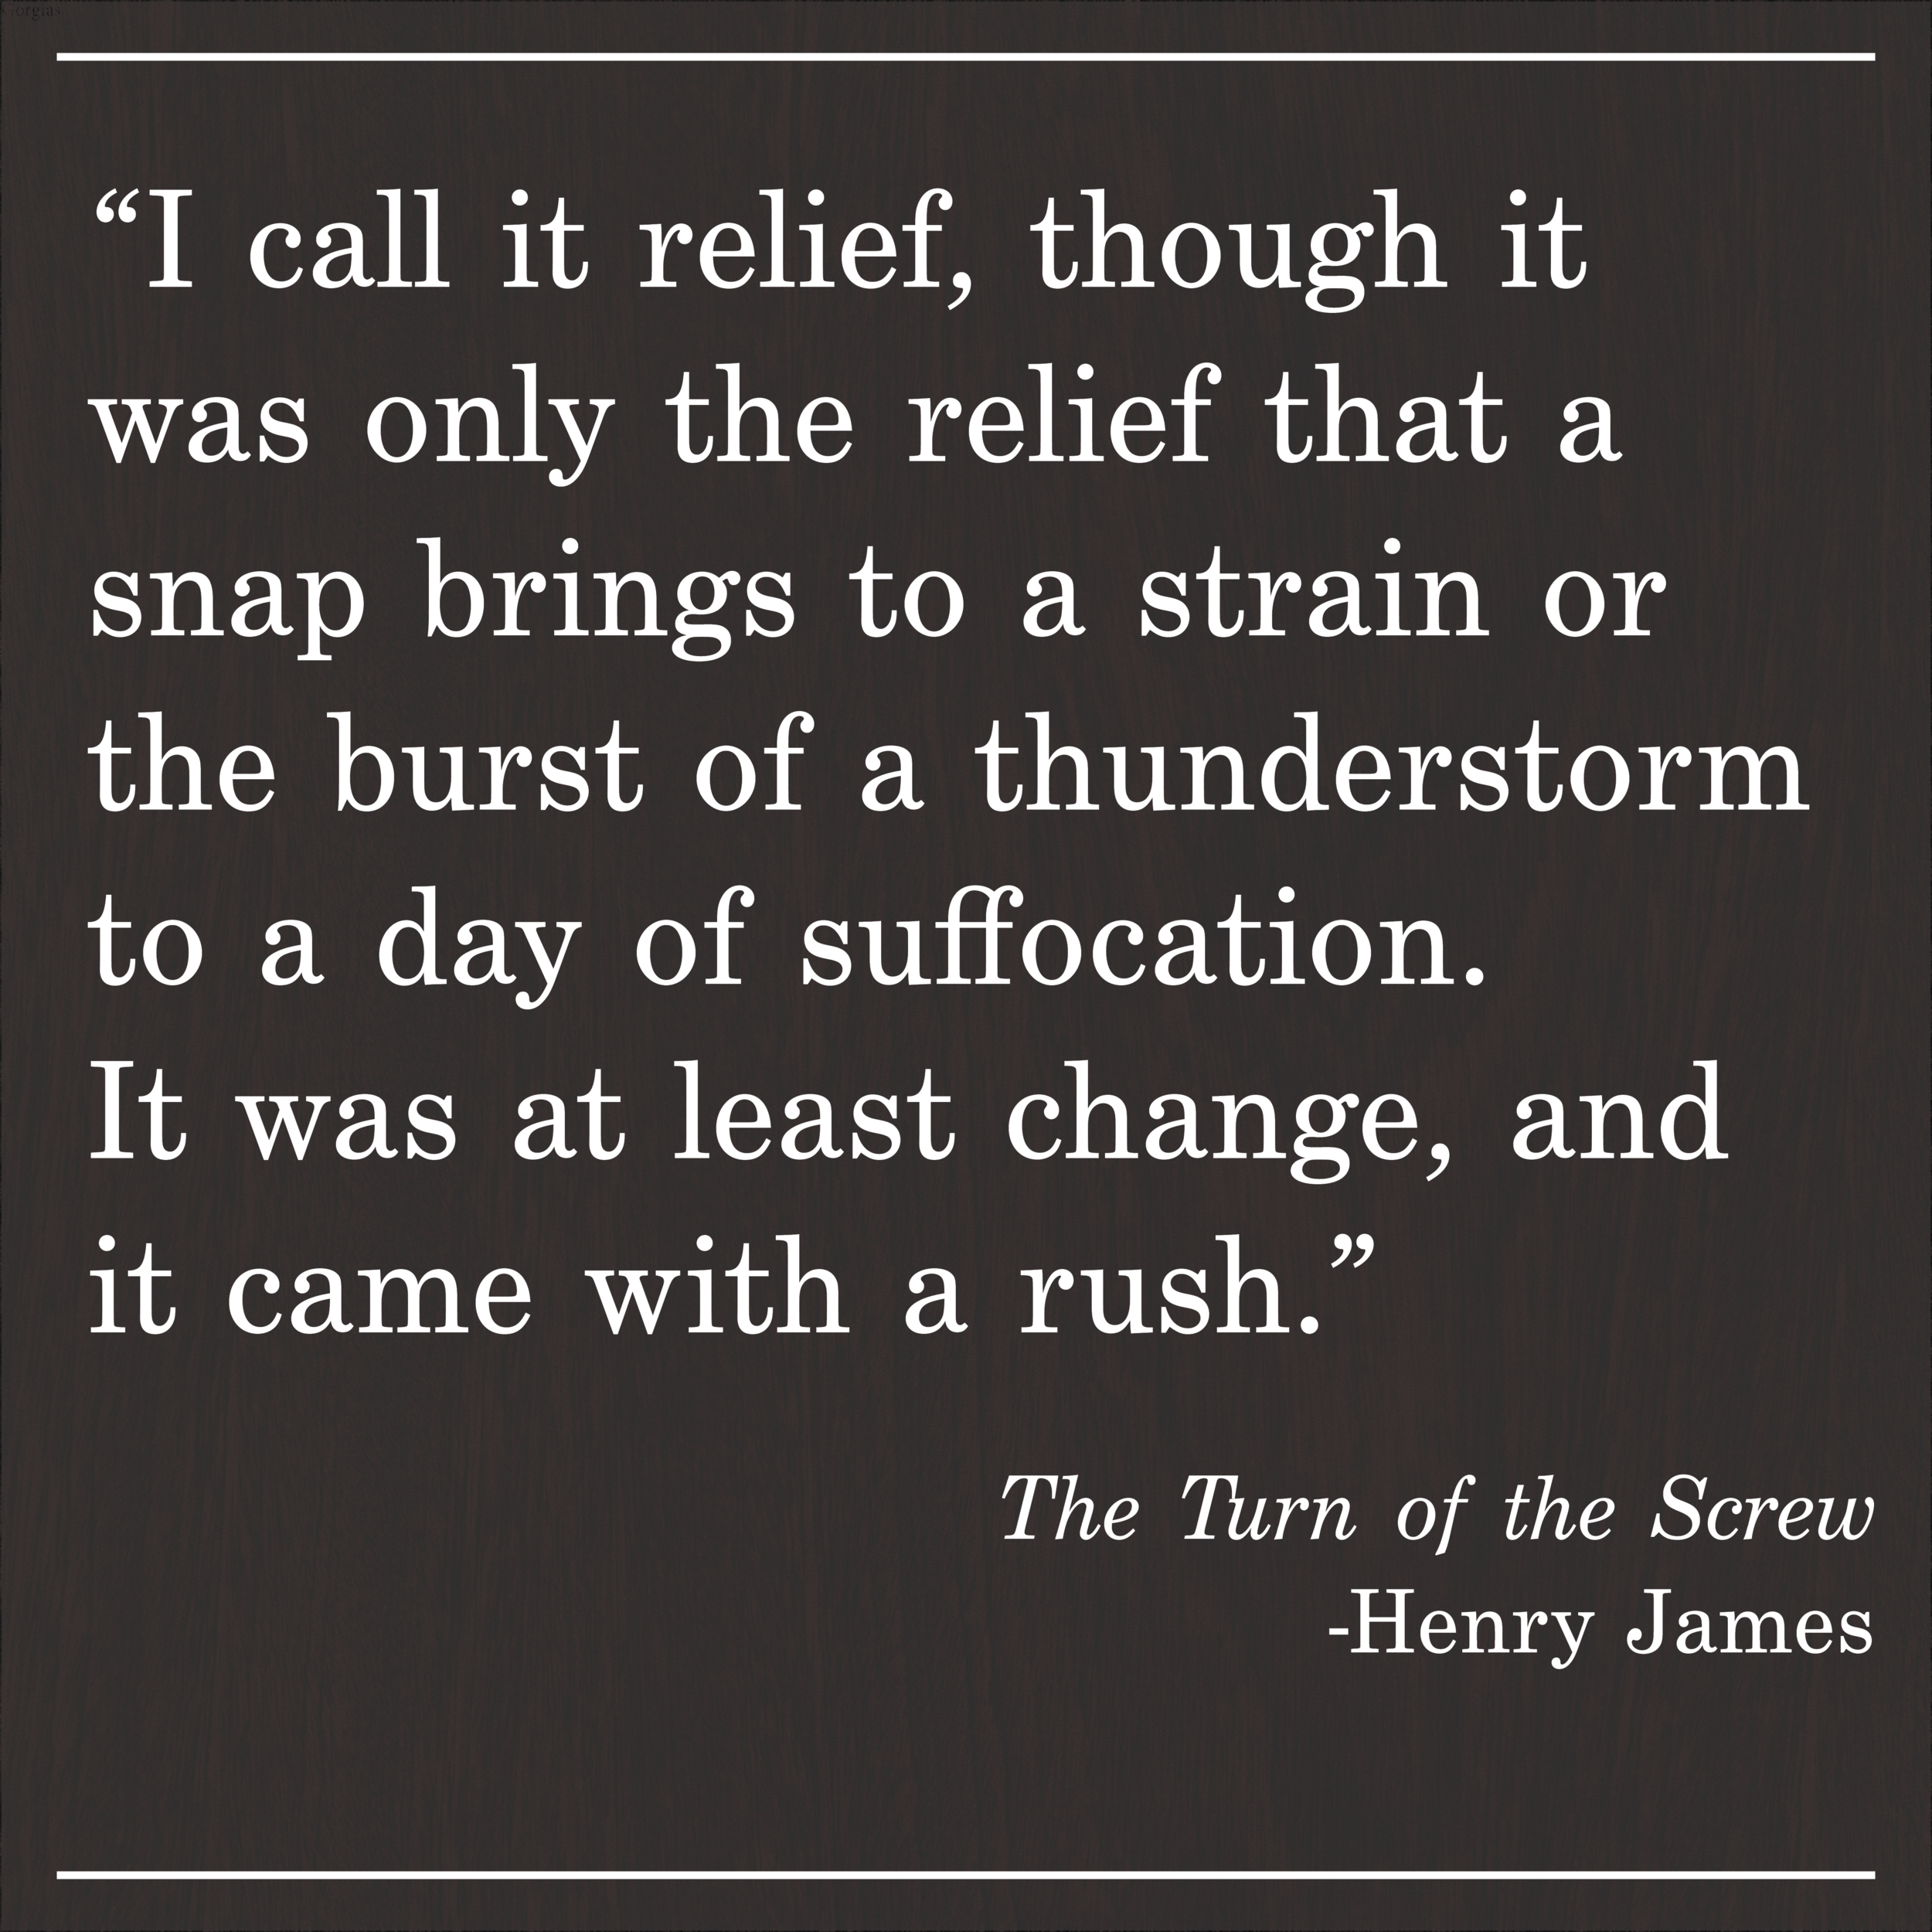 Daily Quote The Turn of the Screw by Henry James